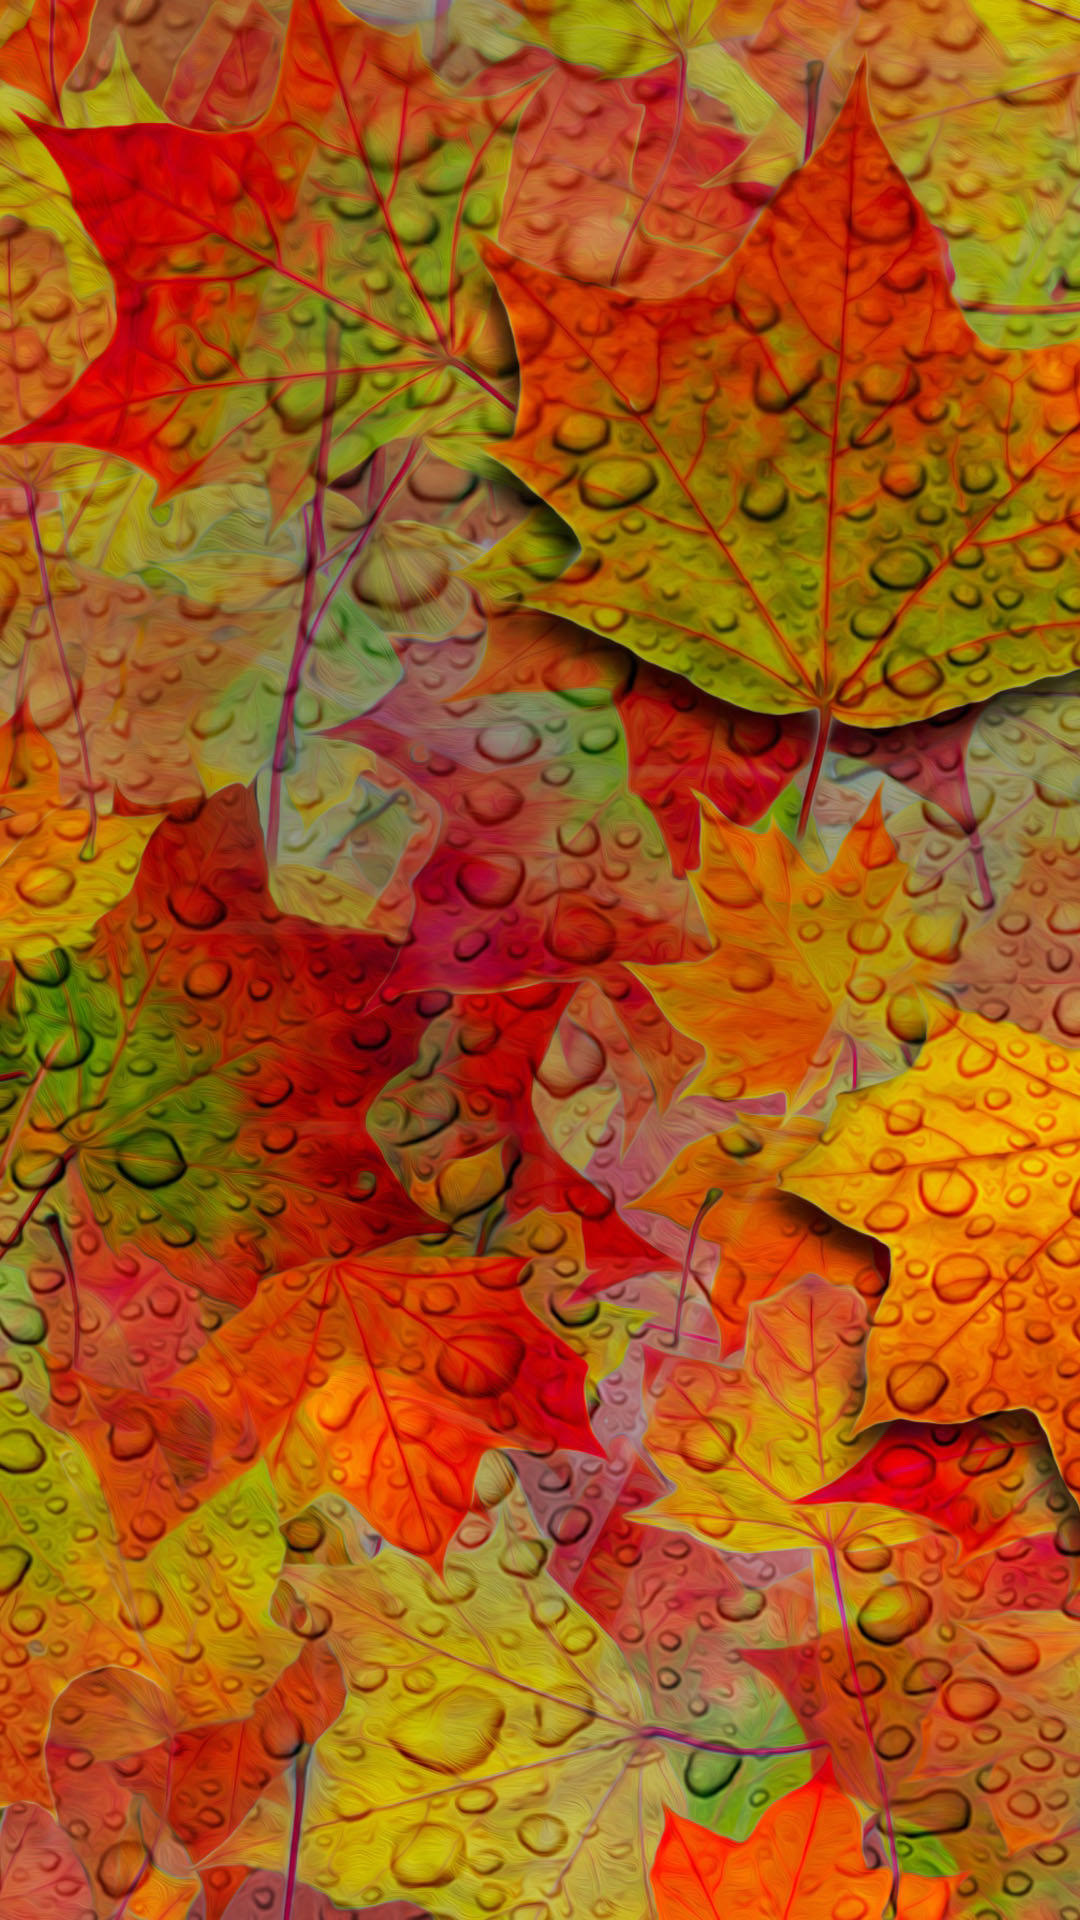 fall leaves hd wallpapers for your iphone 6 iphone 6 plus and iphone 5 1080x1920